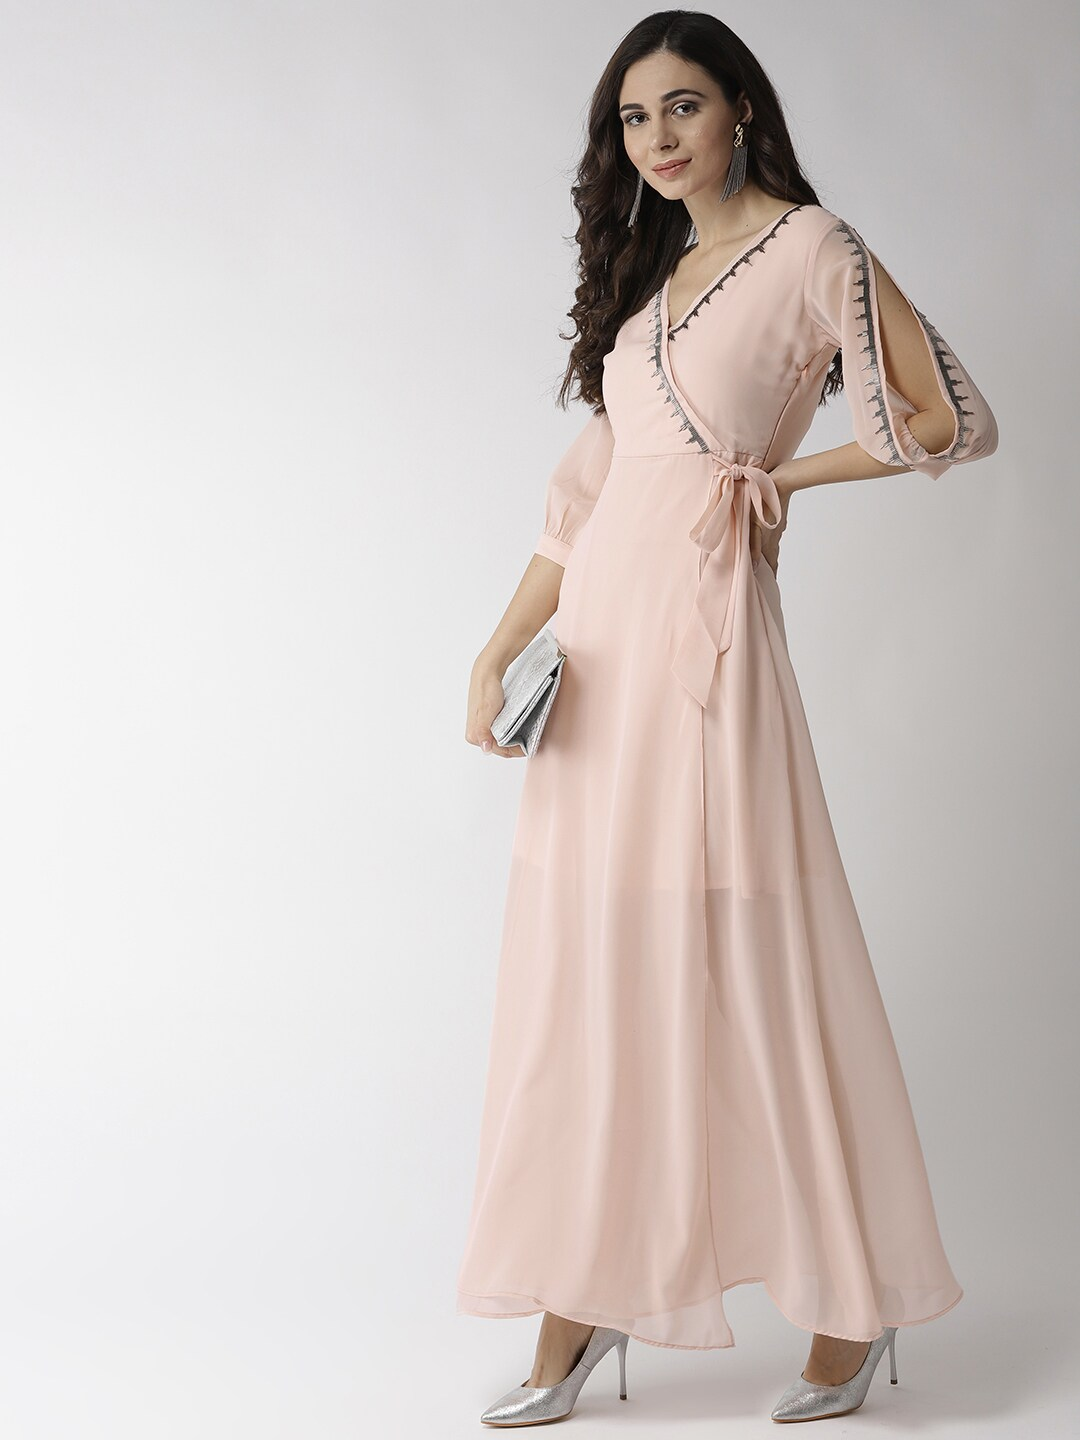 06f22ac0f Gowns - Shop for Gown Online at Best Price